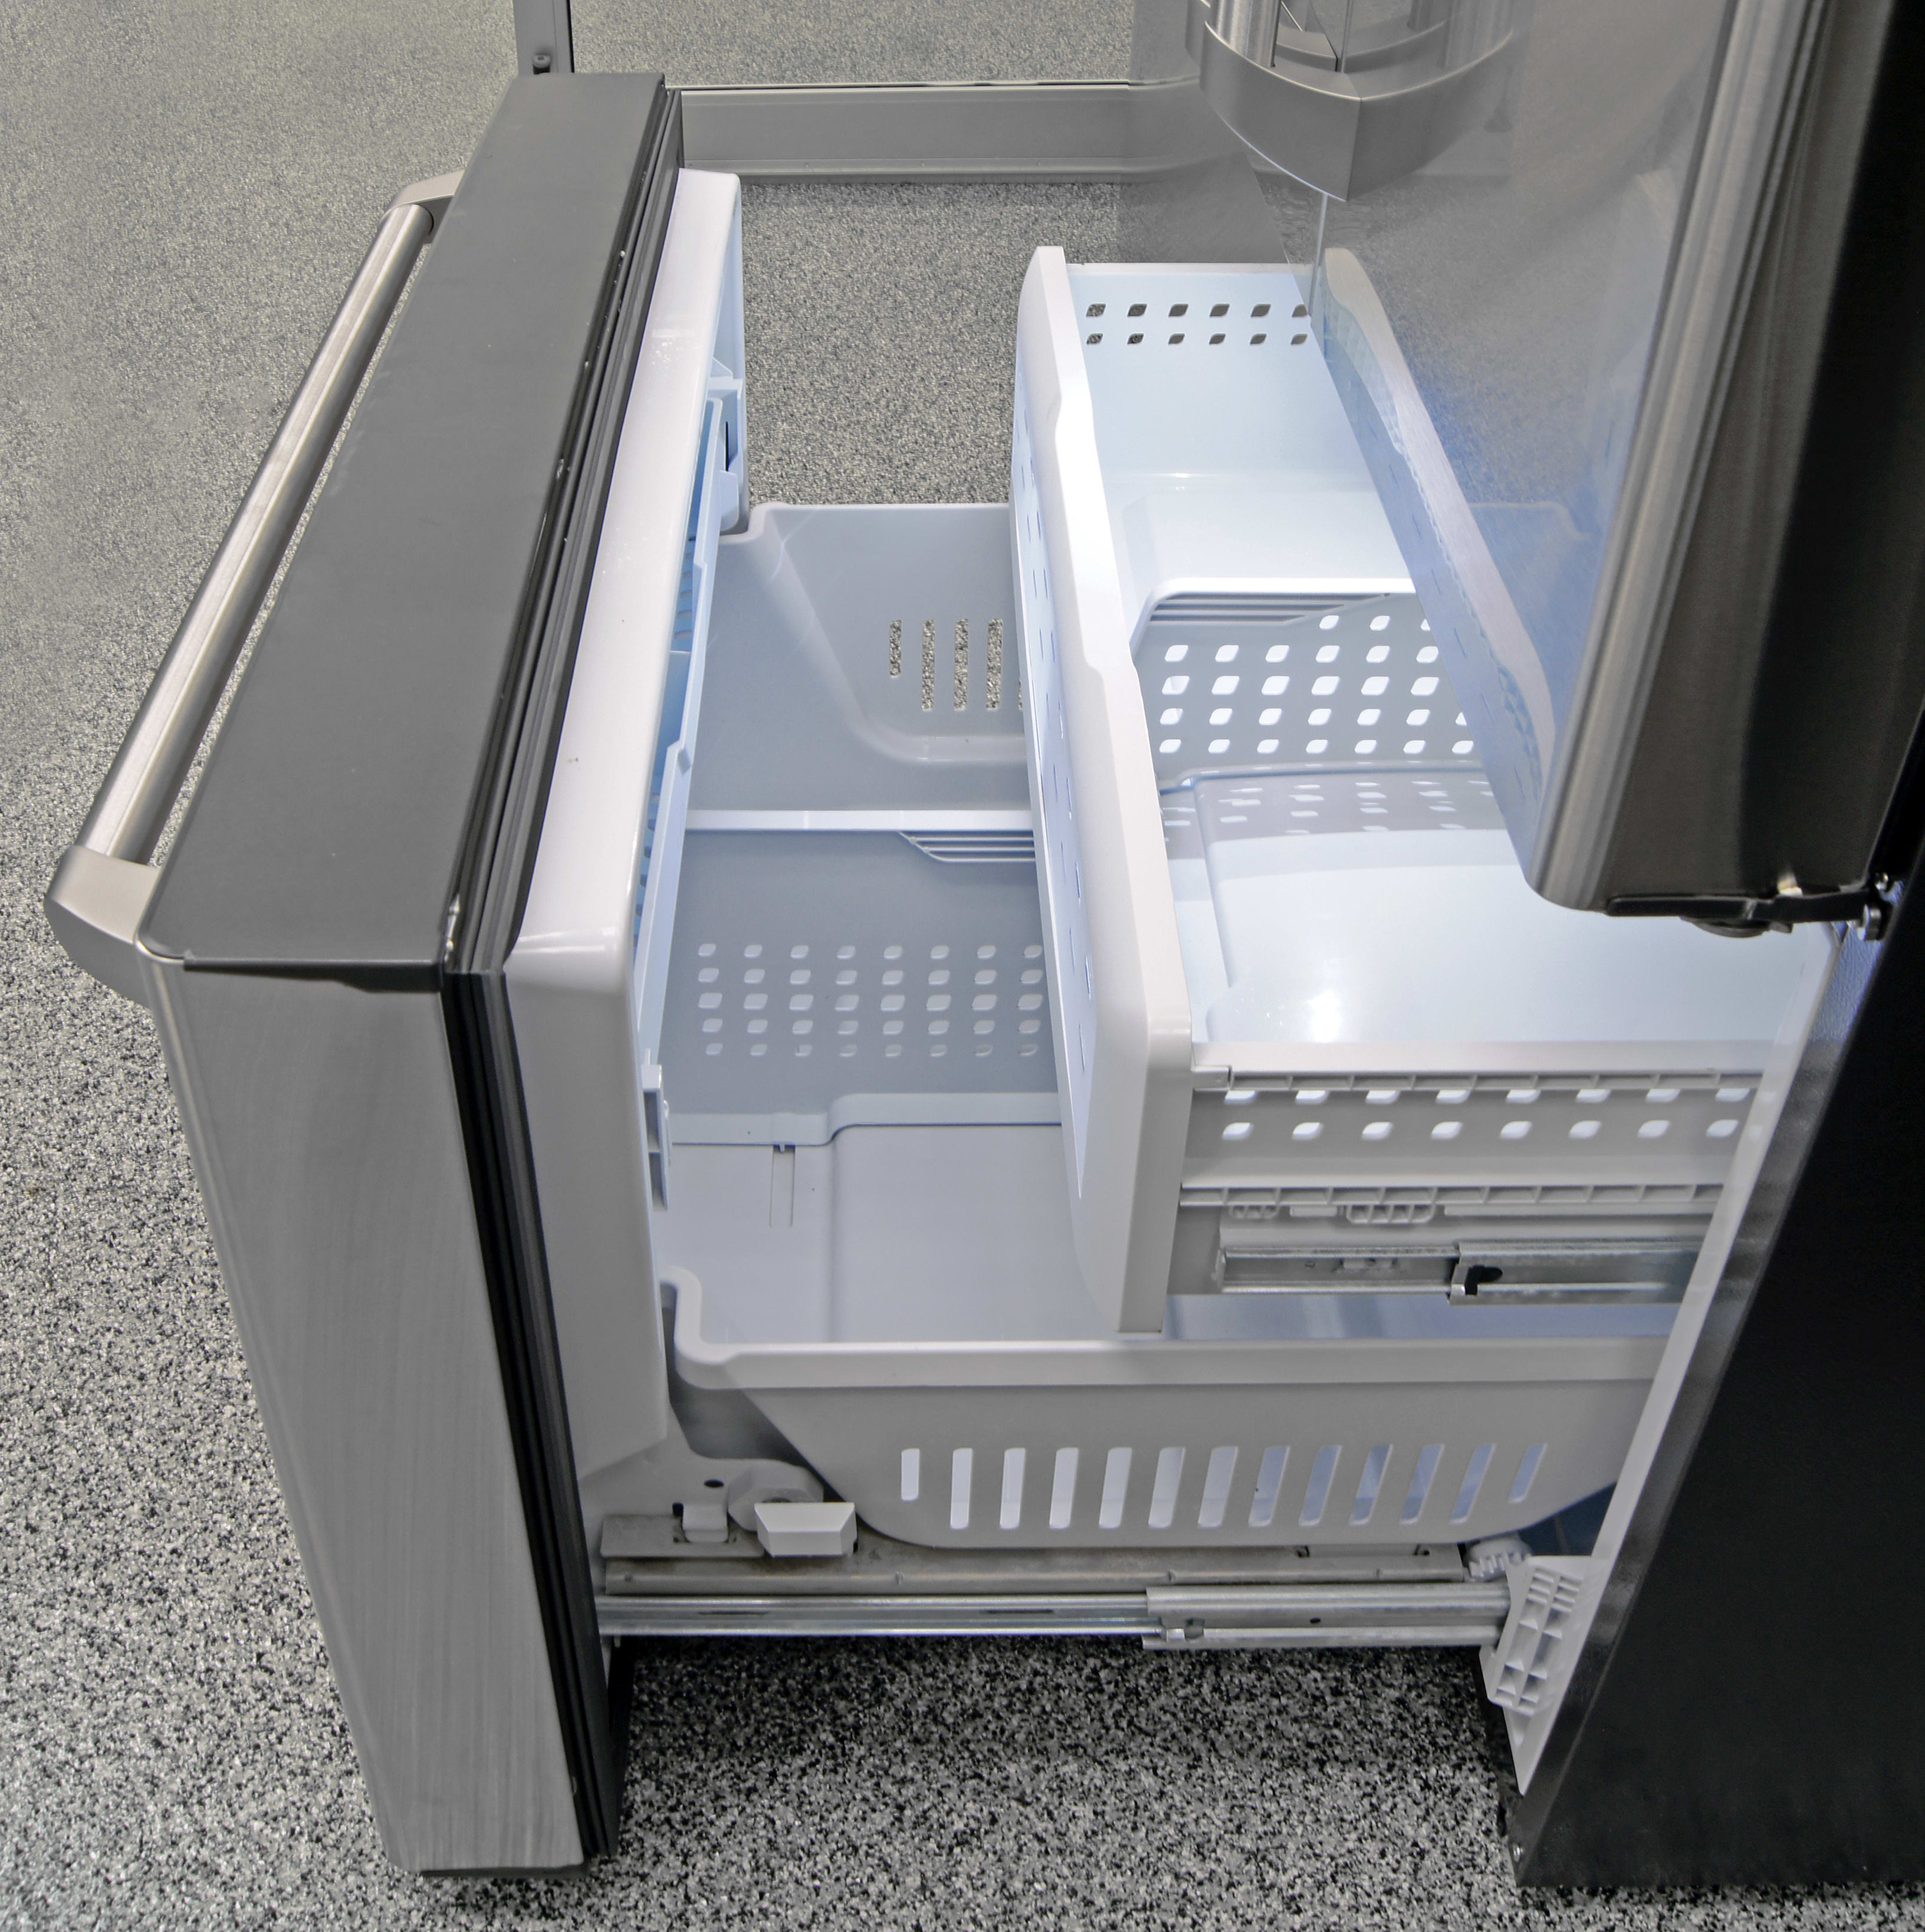 The GE Cafe CFE28TSHSS's pull-out freezer is low-tech, very roomy, and great at chilling food.